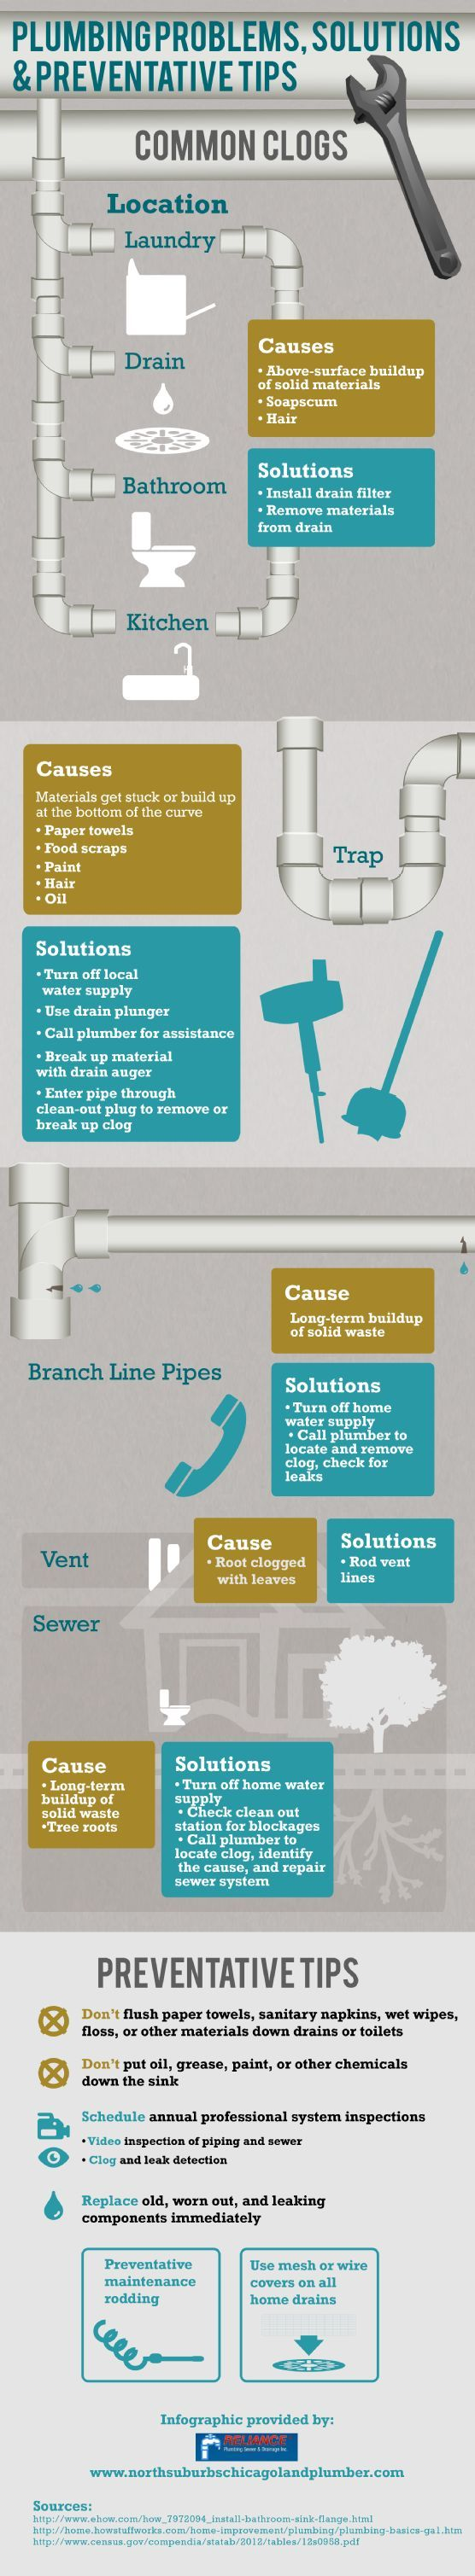 Plumbing Problems, Solutions, and Preventative Tips #HomeMaintenance